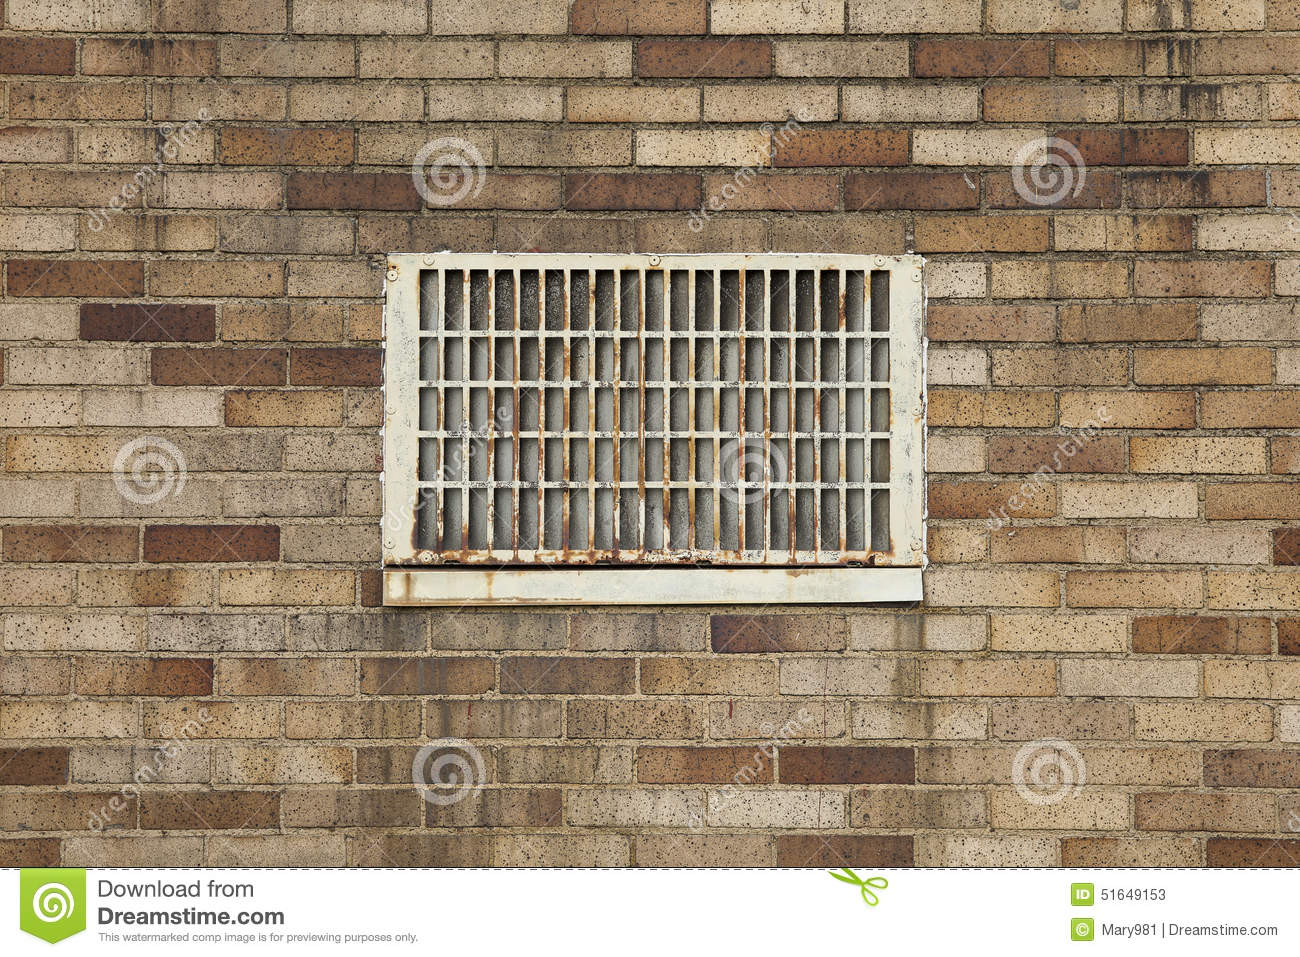 Dirty brick wall with vent